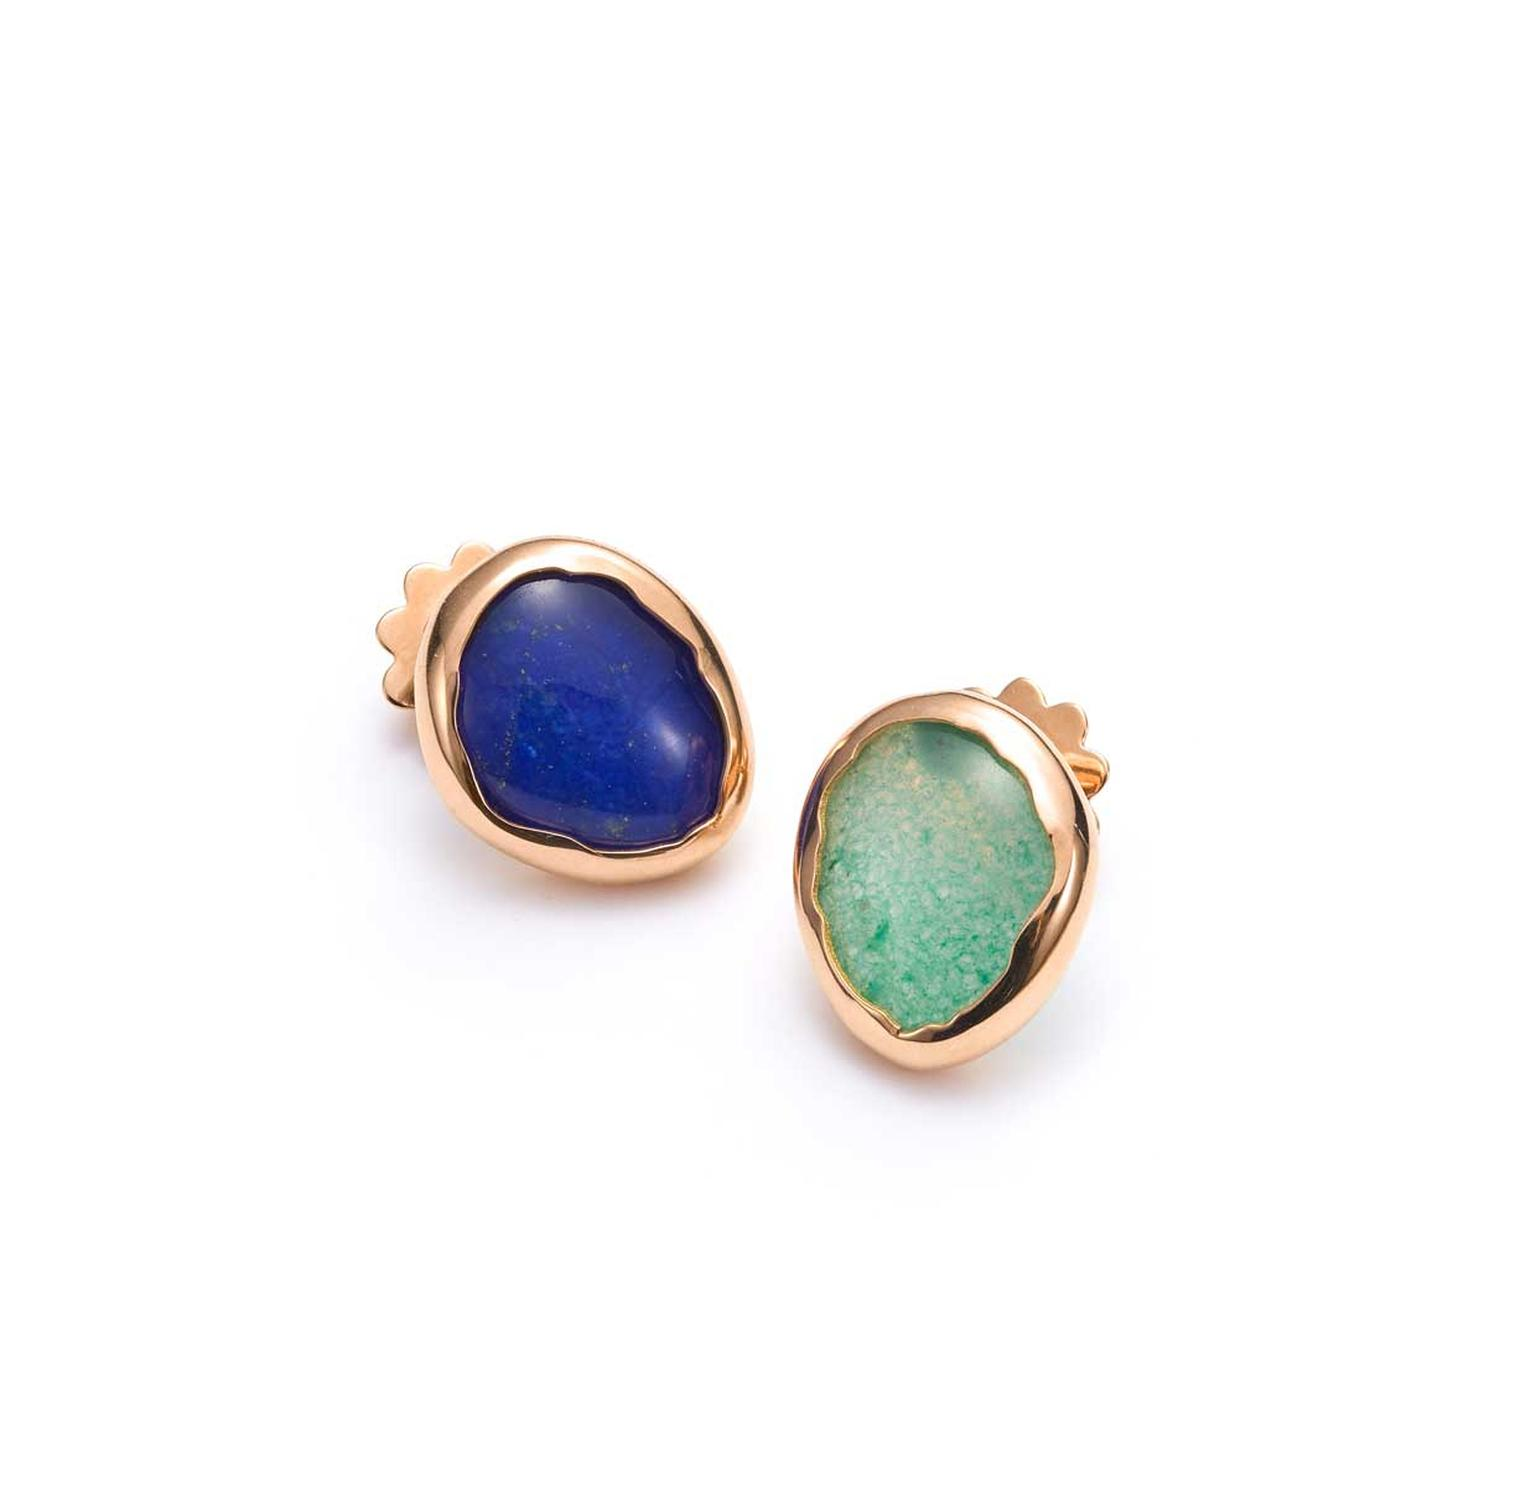 Rubover settings mismatched lapis lazuli earrings by Mattioli Nuvole